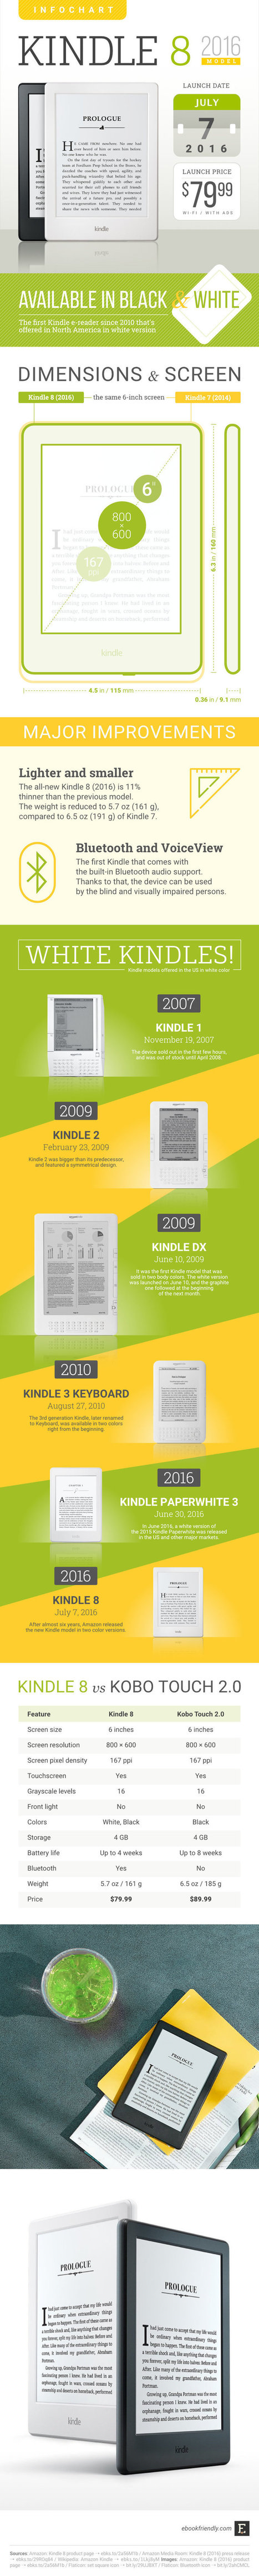 Kindle 8 (2016) – everything you wanted to know (infographic) | Ebook and Publishing | Scoop.it